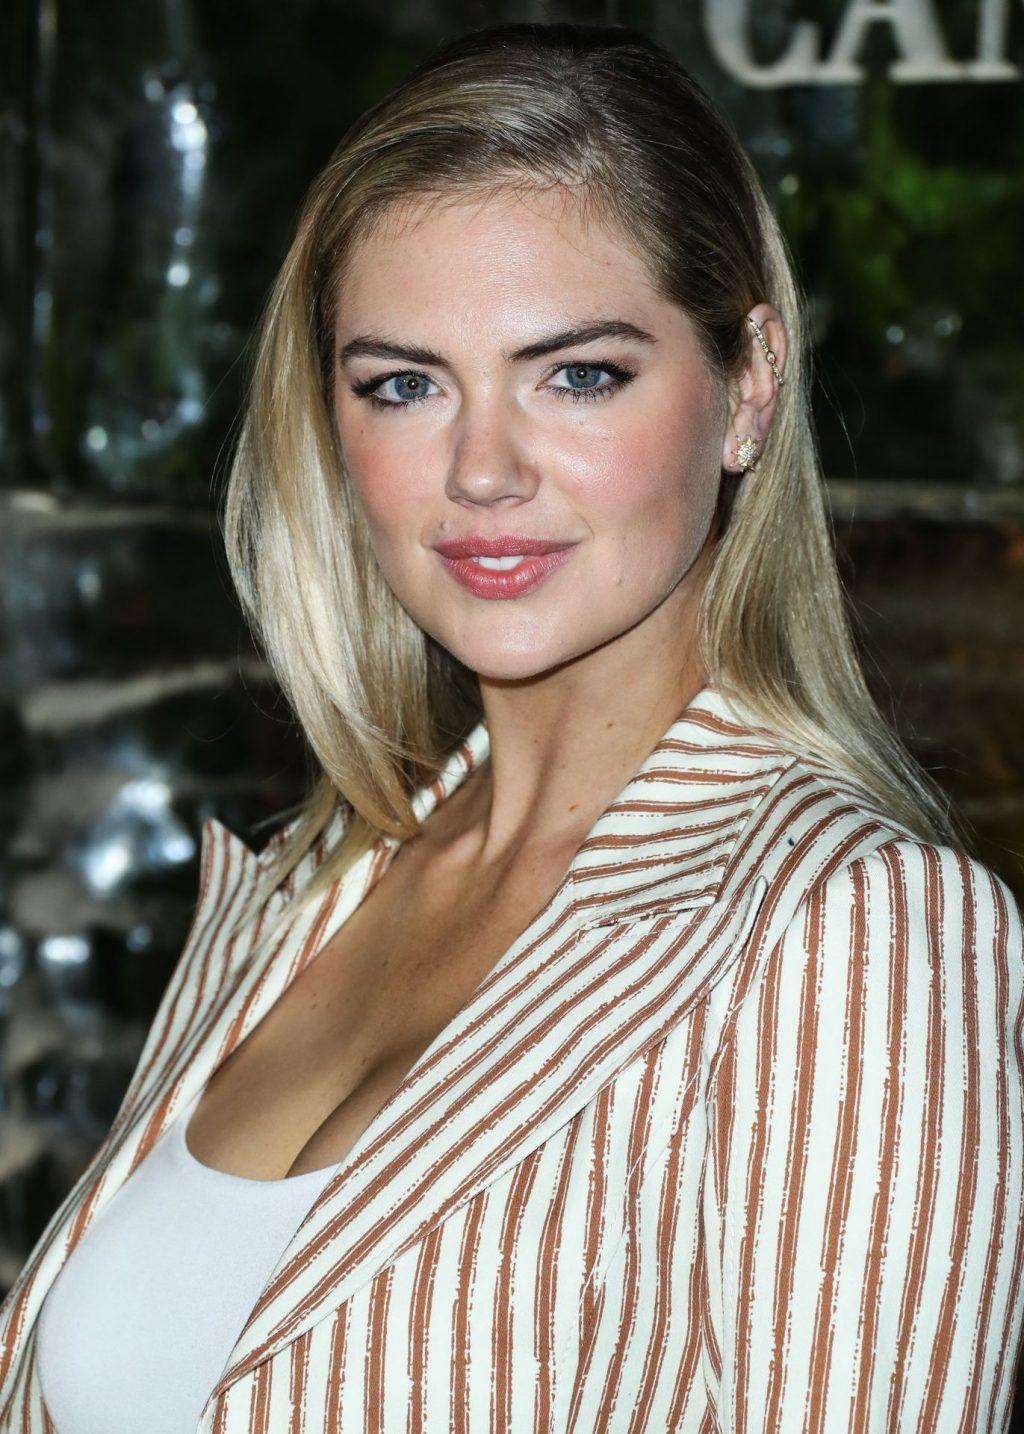 Kate Upton Sexy The Fappening Blog 90 1024x1434 - Kate Upton Attends Canada Goose And Vogue Cocktails & Conversations (104 Photos)